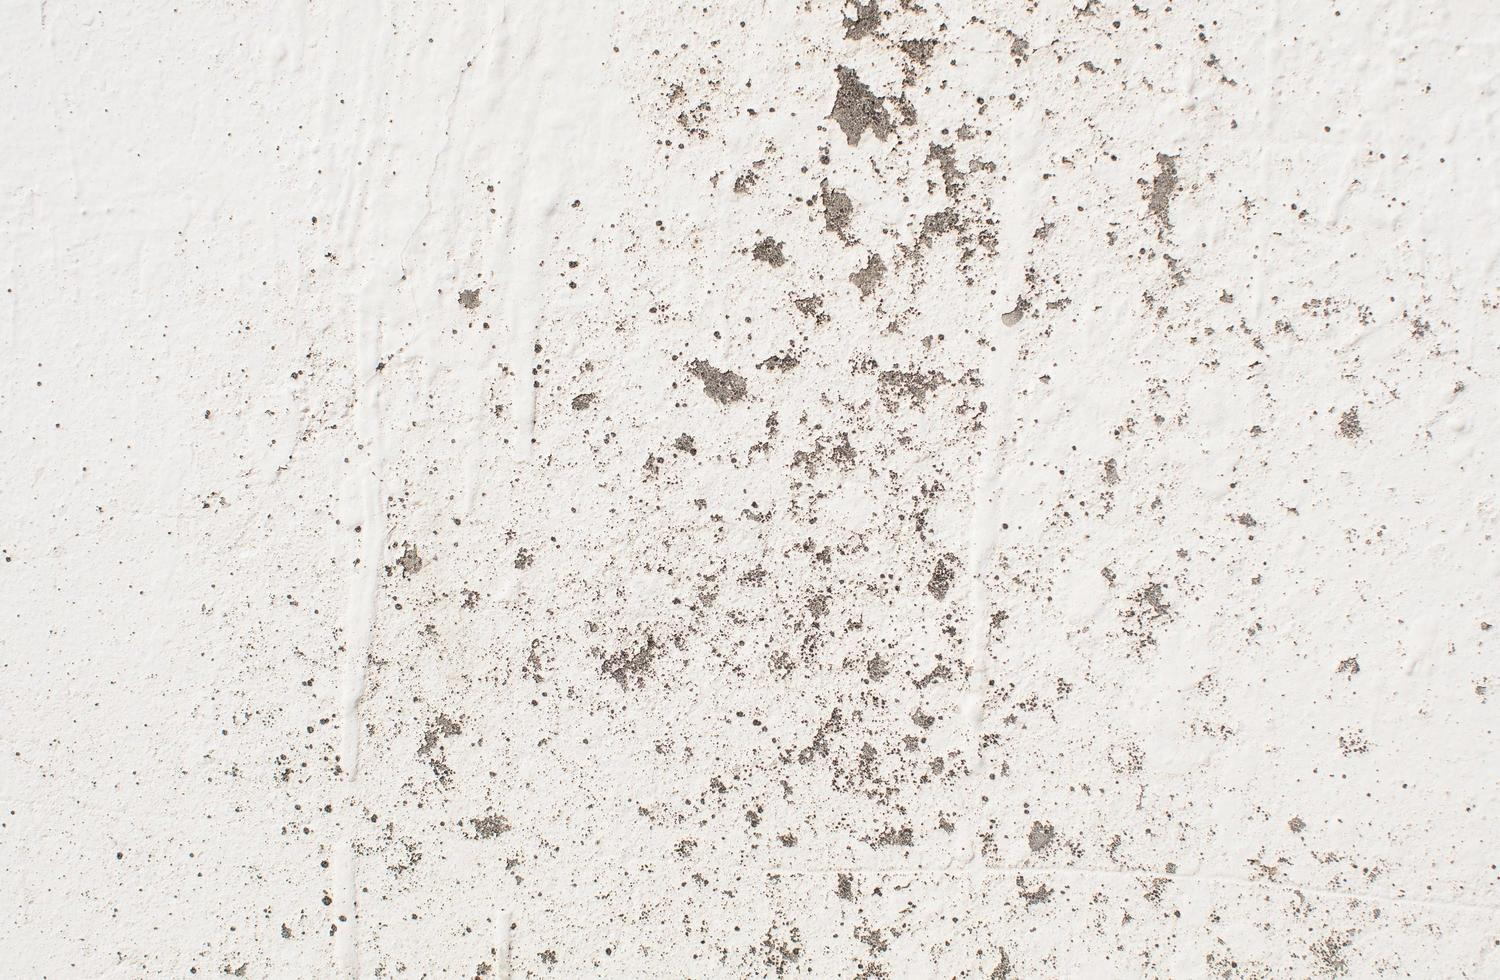 Speckled wall texture photo